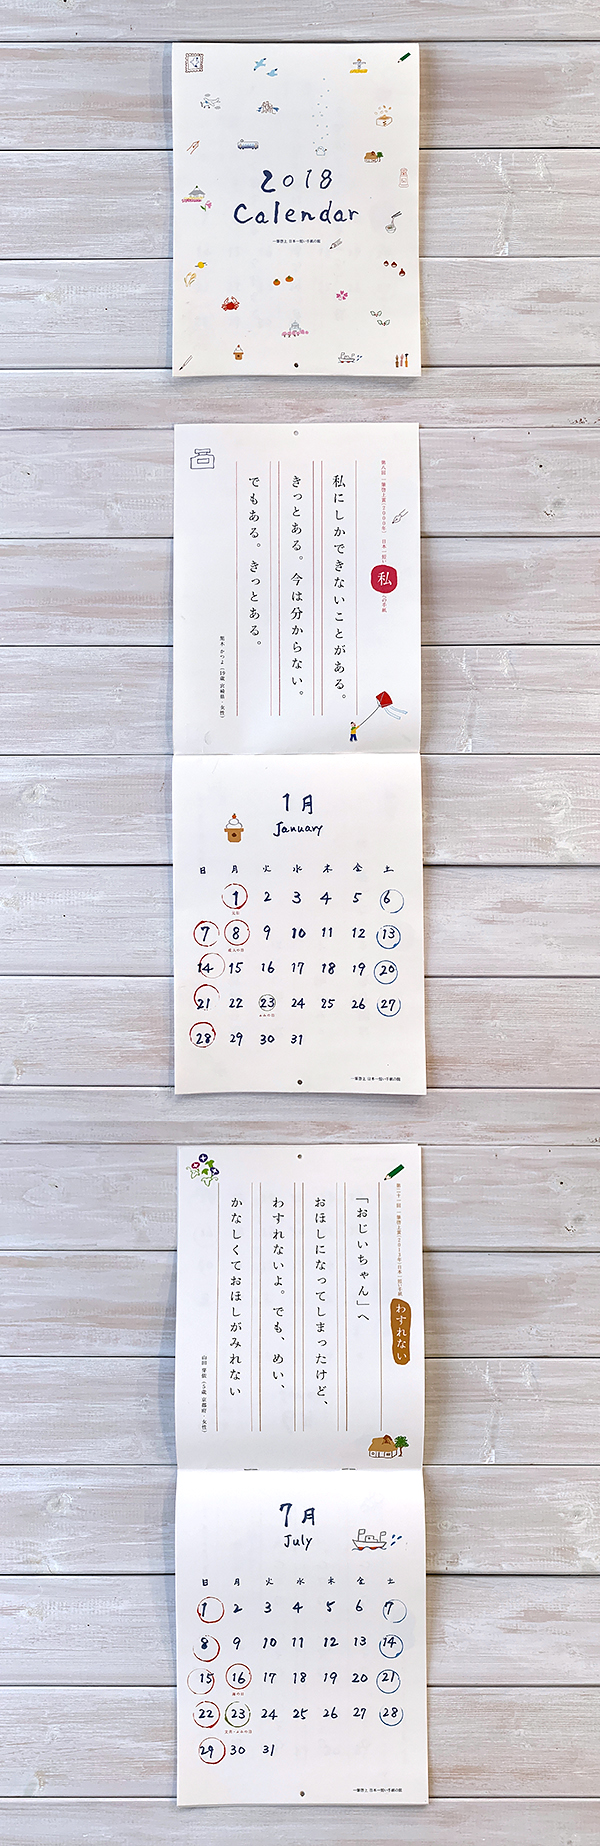 ippitsucalendar_ graphic design 2573.jpg